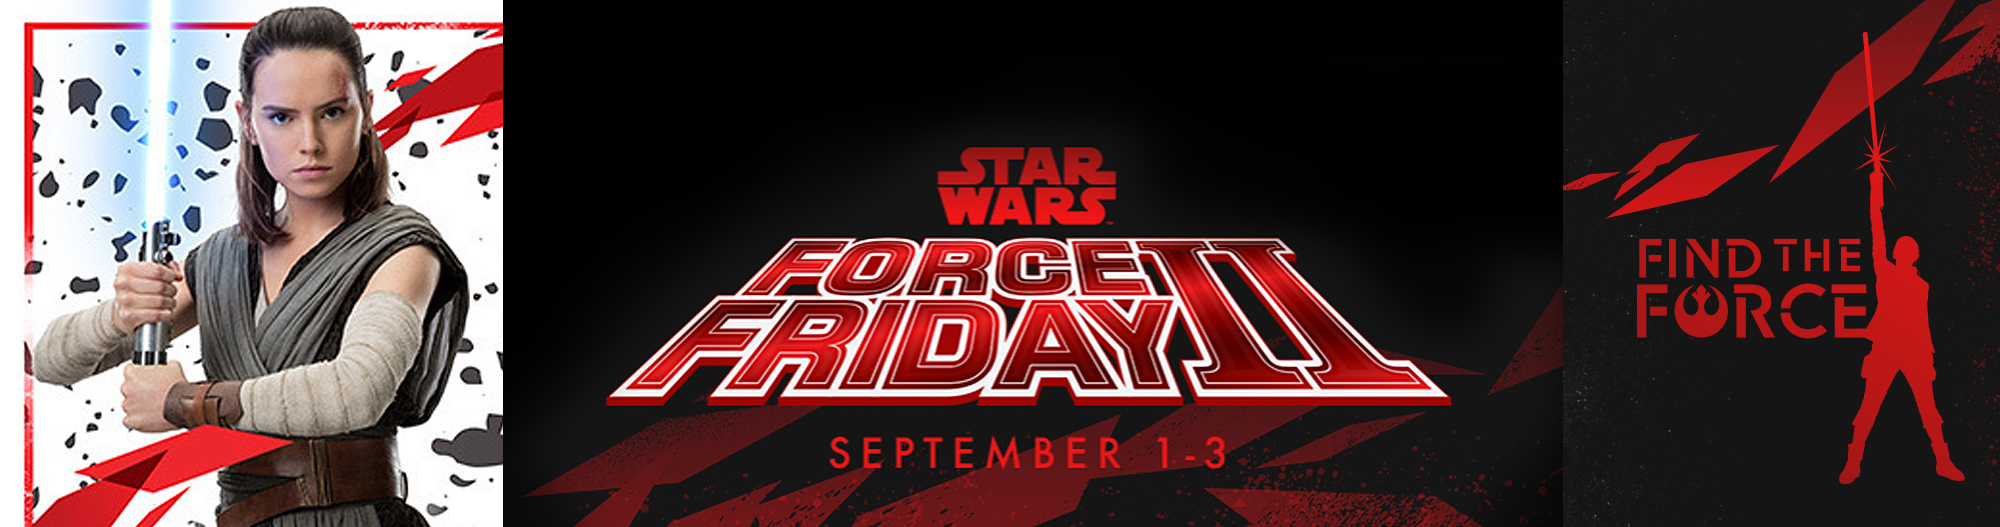 "Toys""R""Us To Unveil New Star Wars Merchandise At Midnight Events Around The World On September 1"